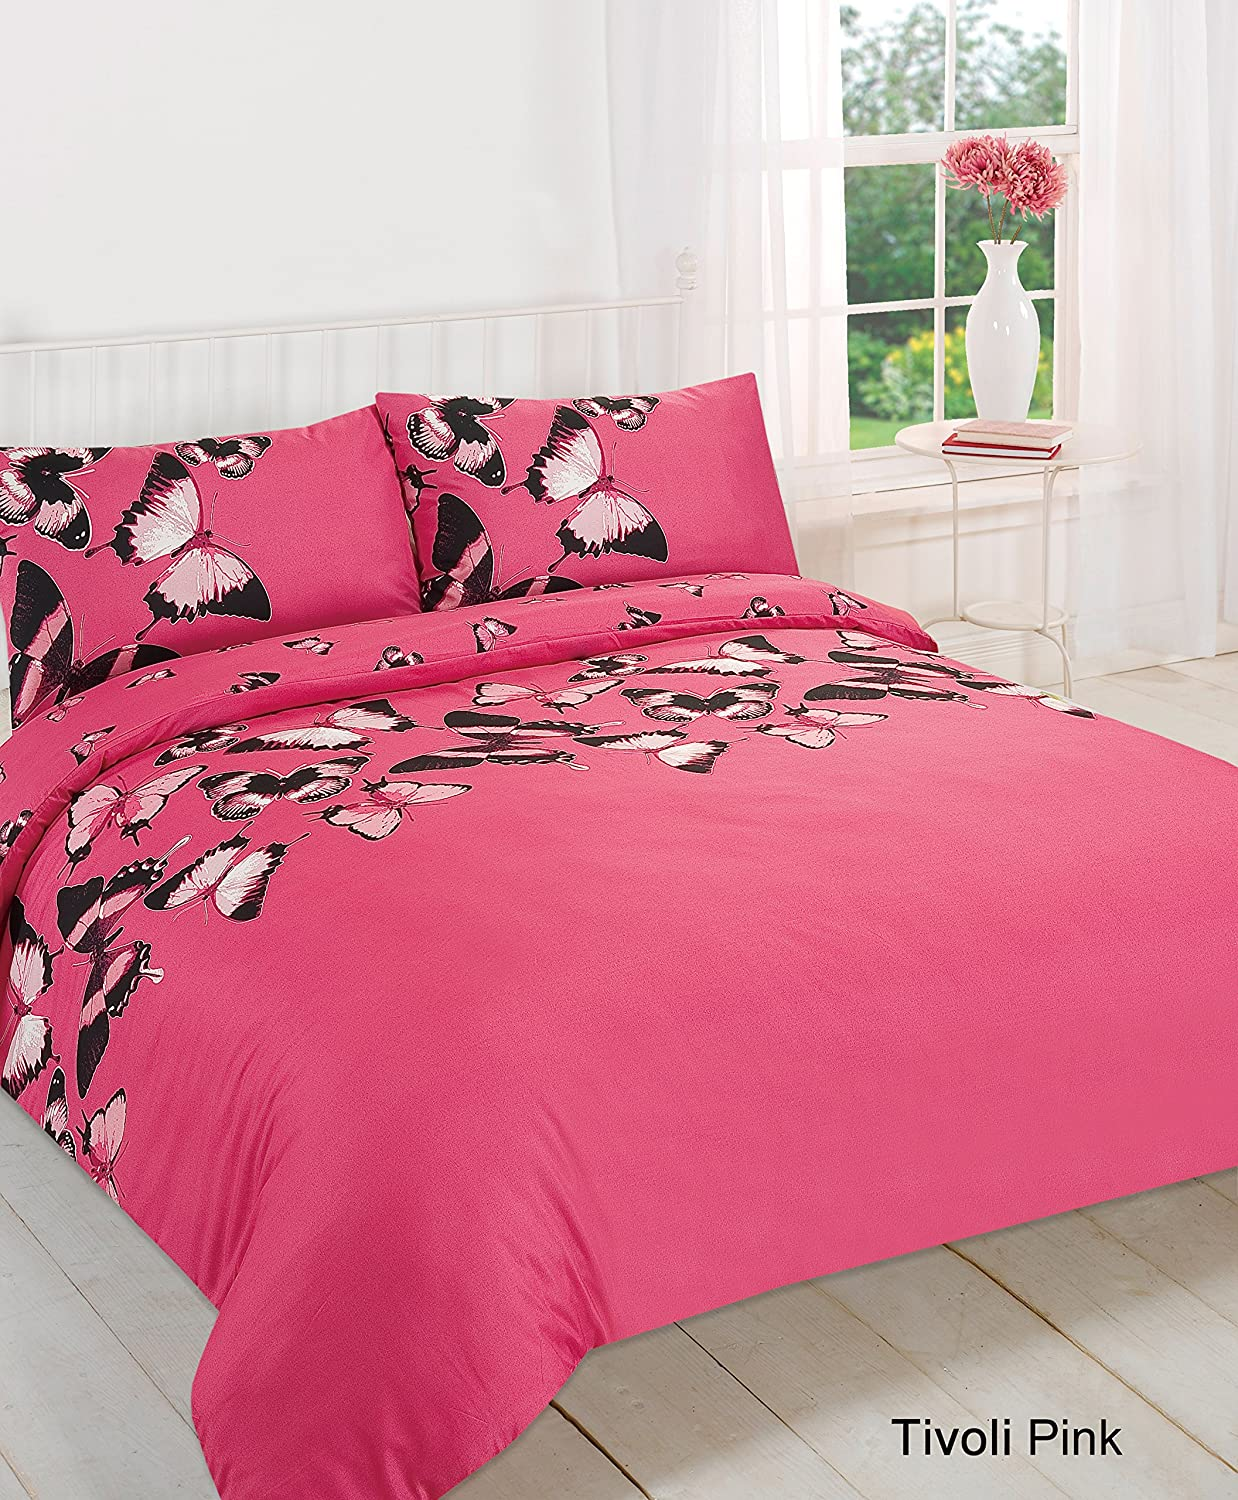 Pink and black bedding - Hot Pink Tivoli Butterfly Duvet Quilt Cover Pillow Case Bedding Set Double Size Amazon Co Uk Kitchen Home